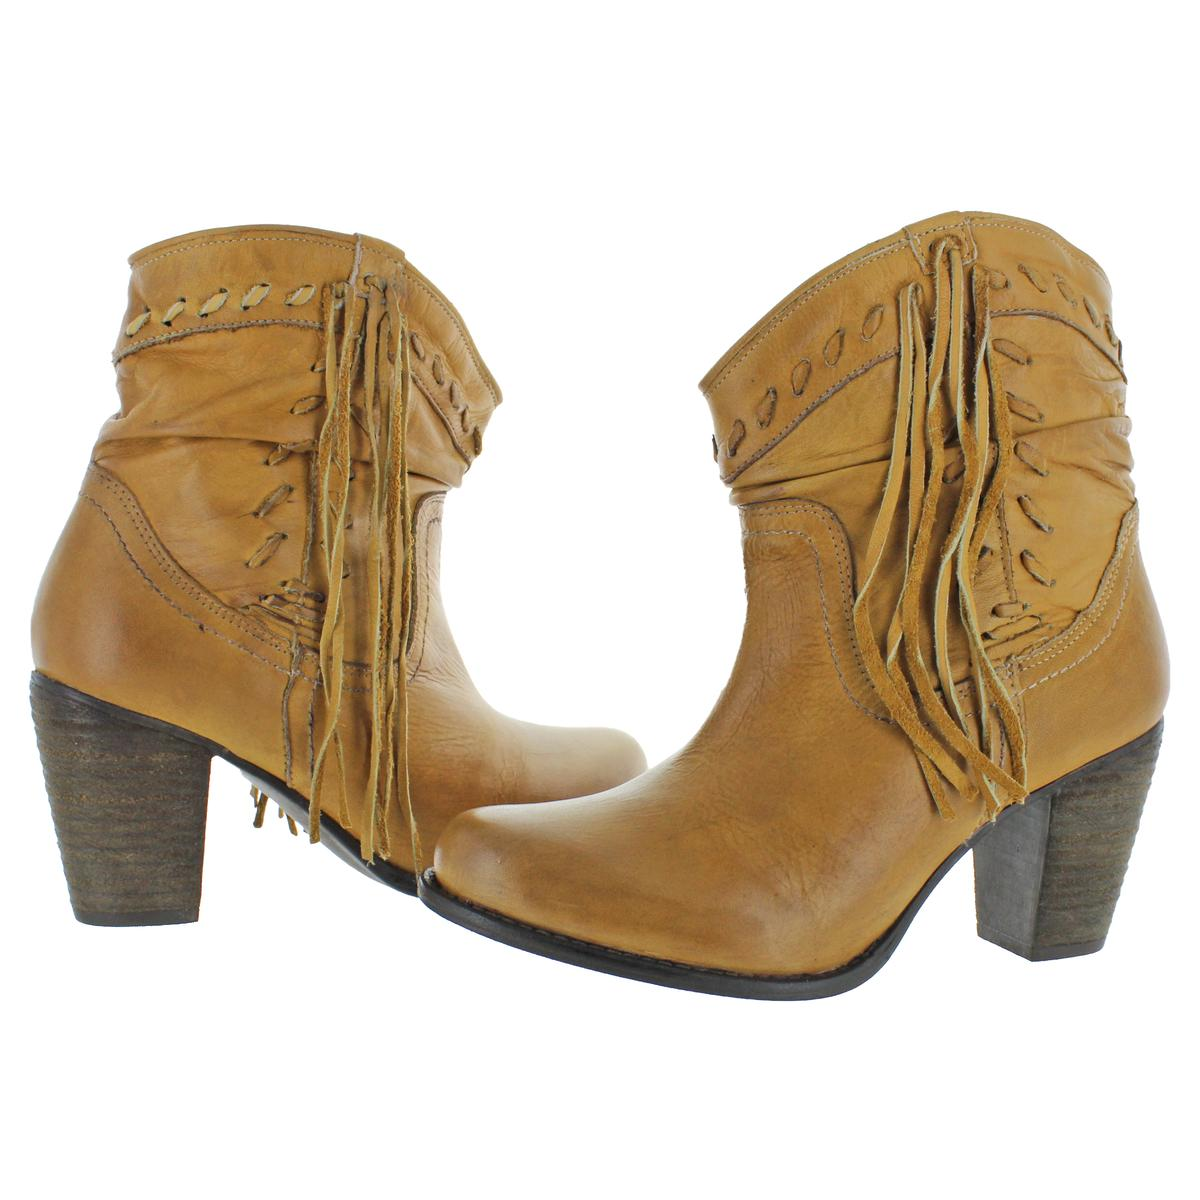 Naughty-Monkey-Womens-Noe-Leather-Block-Heel-Bootie-Ankle-Boots-Shoes-BHFO-9116 thumbnail 3